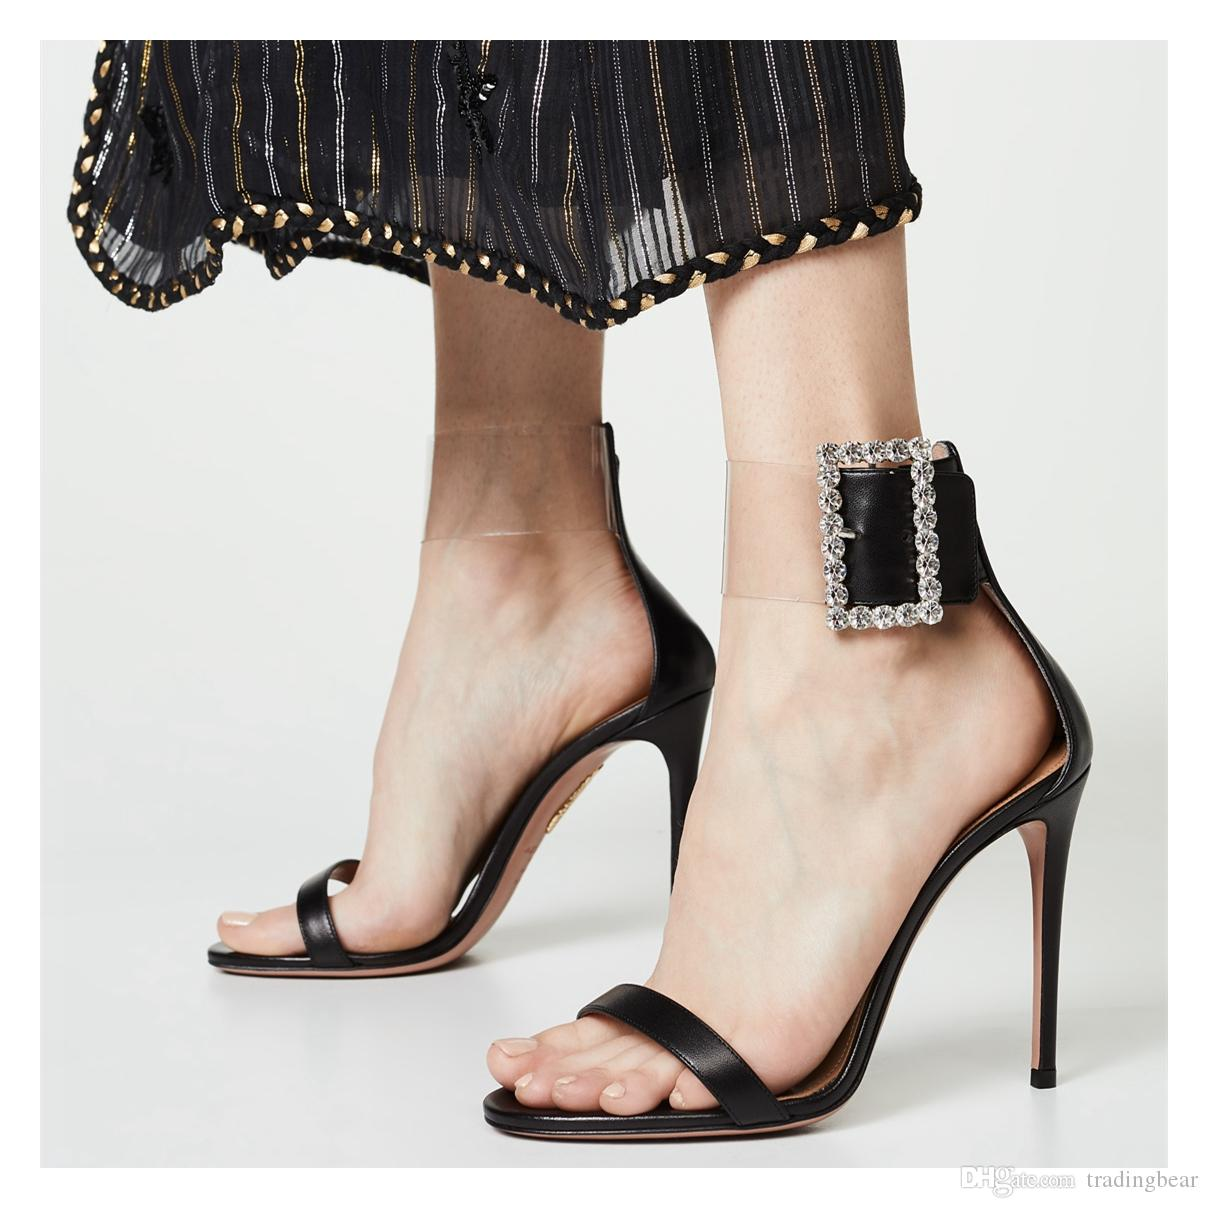 Size 35 To 42 rhinestone buckle ankle strappy high heels sandals sexy dress shoes 12cm fashion luxury designer women shoes tradingbear